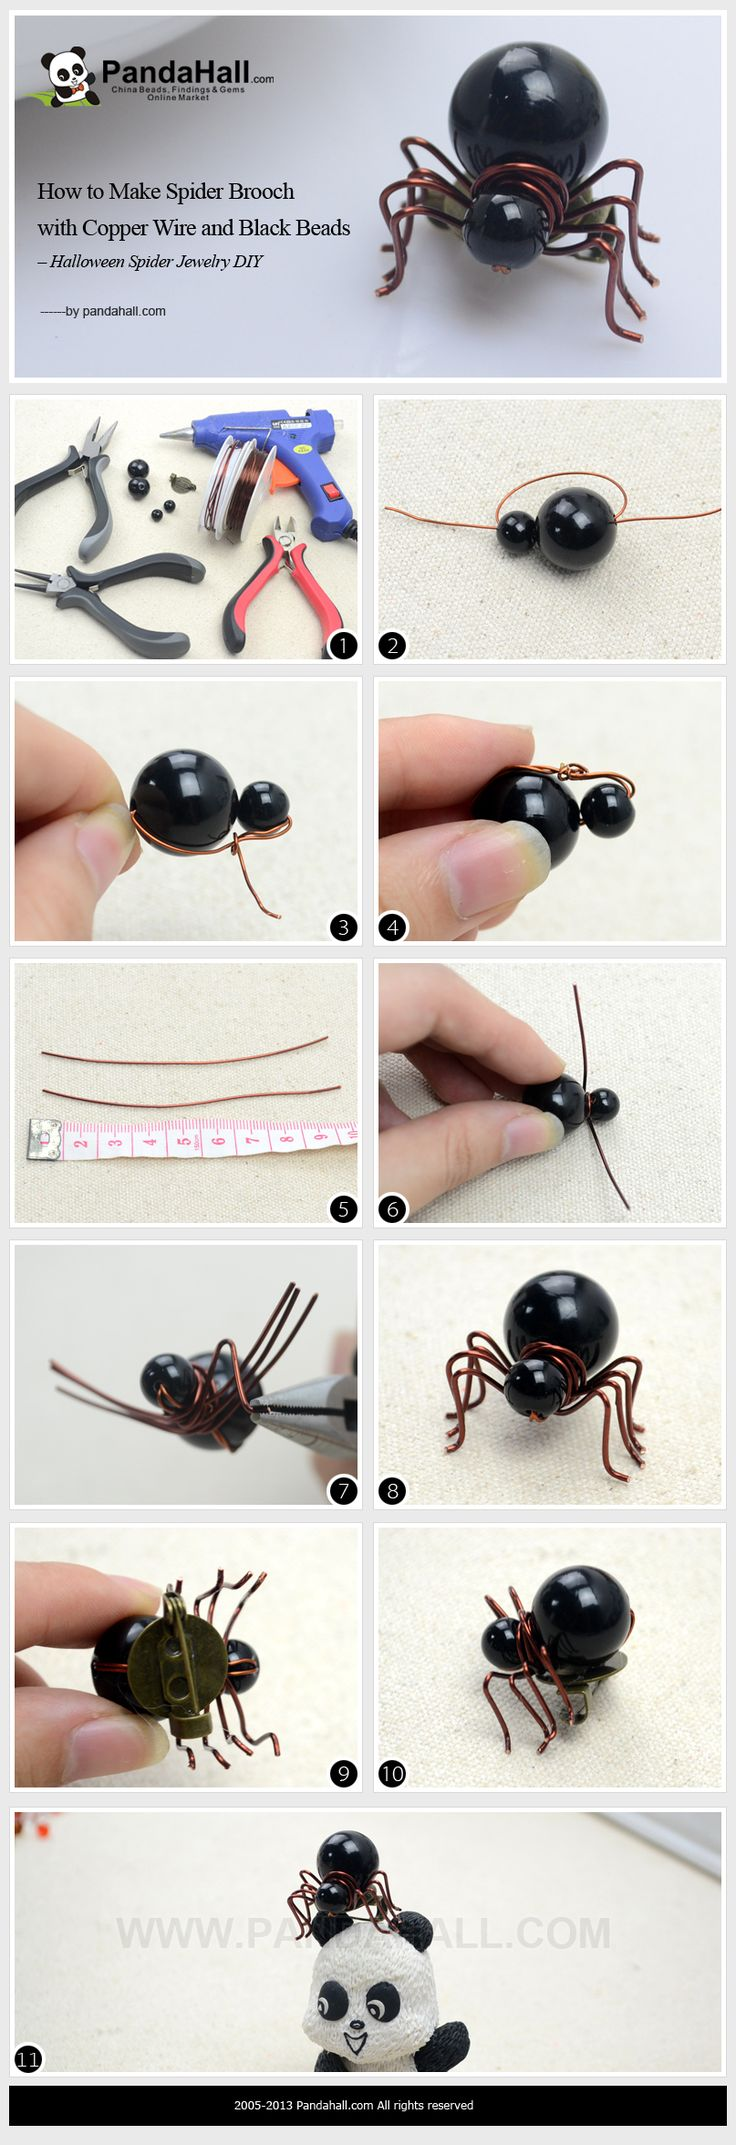 Make Spider Brooch with Copper Wire and Black Beads for Halloween